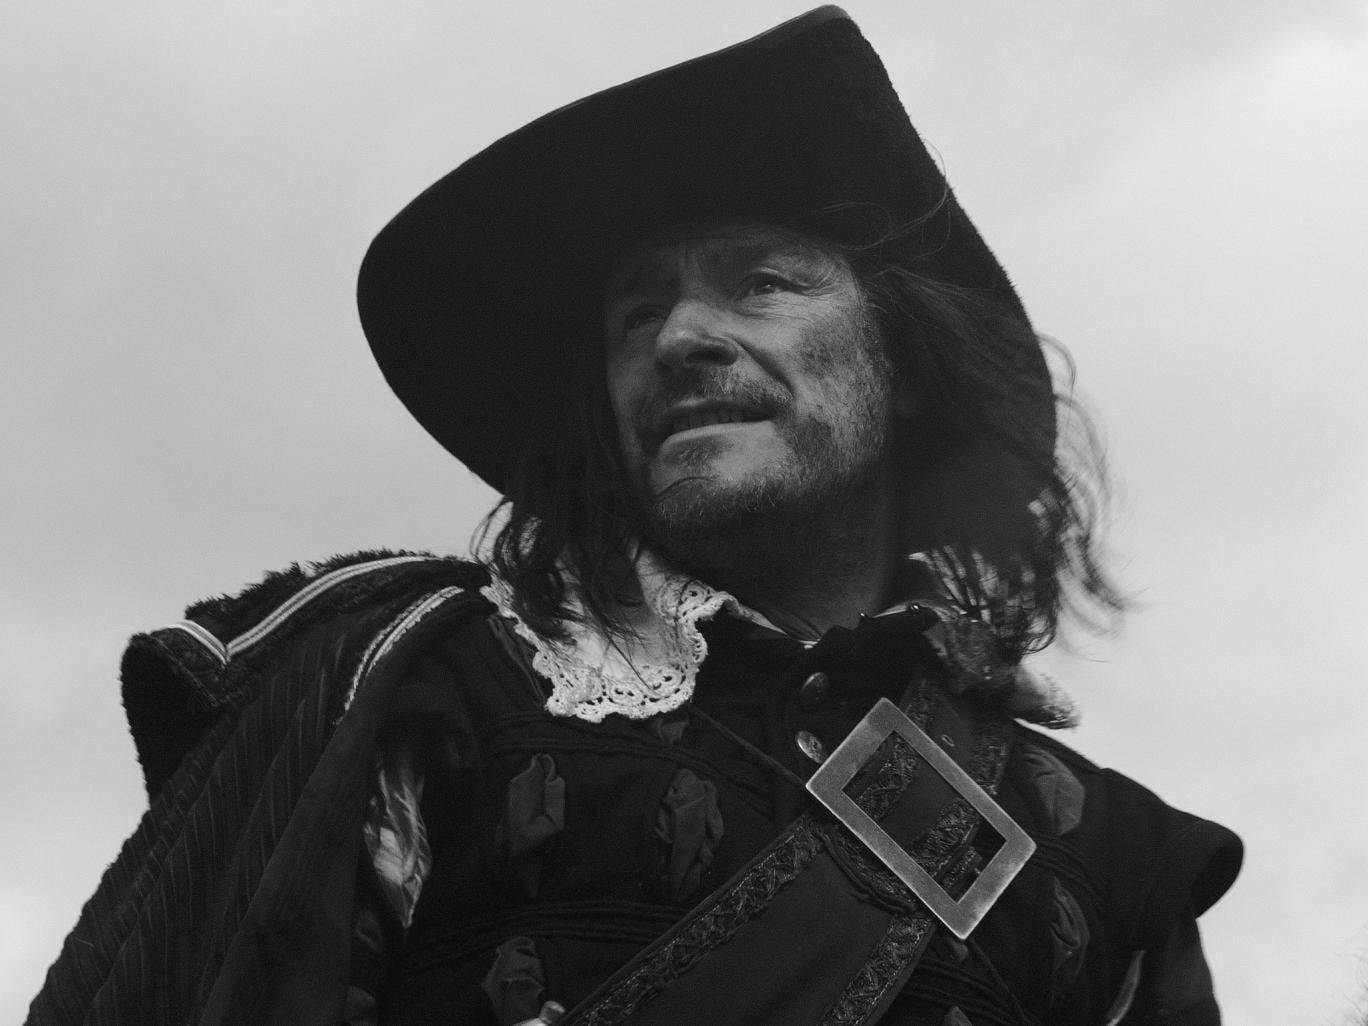 Devil rides out: A Field in England, with Julian Barratt, drums up an earthly inferno out of next to nothing